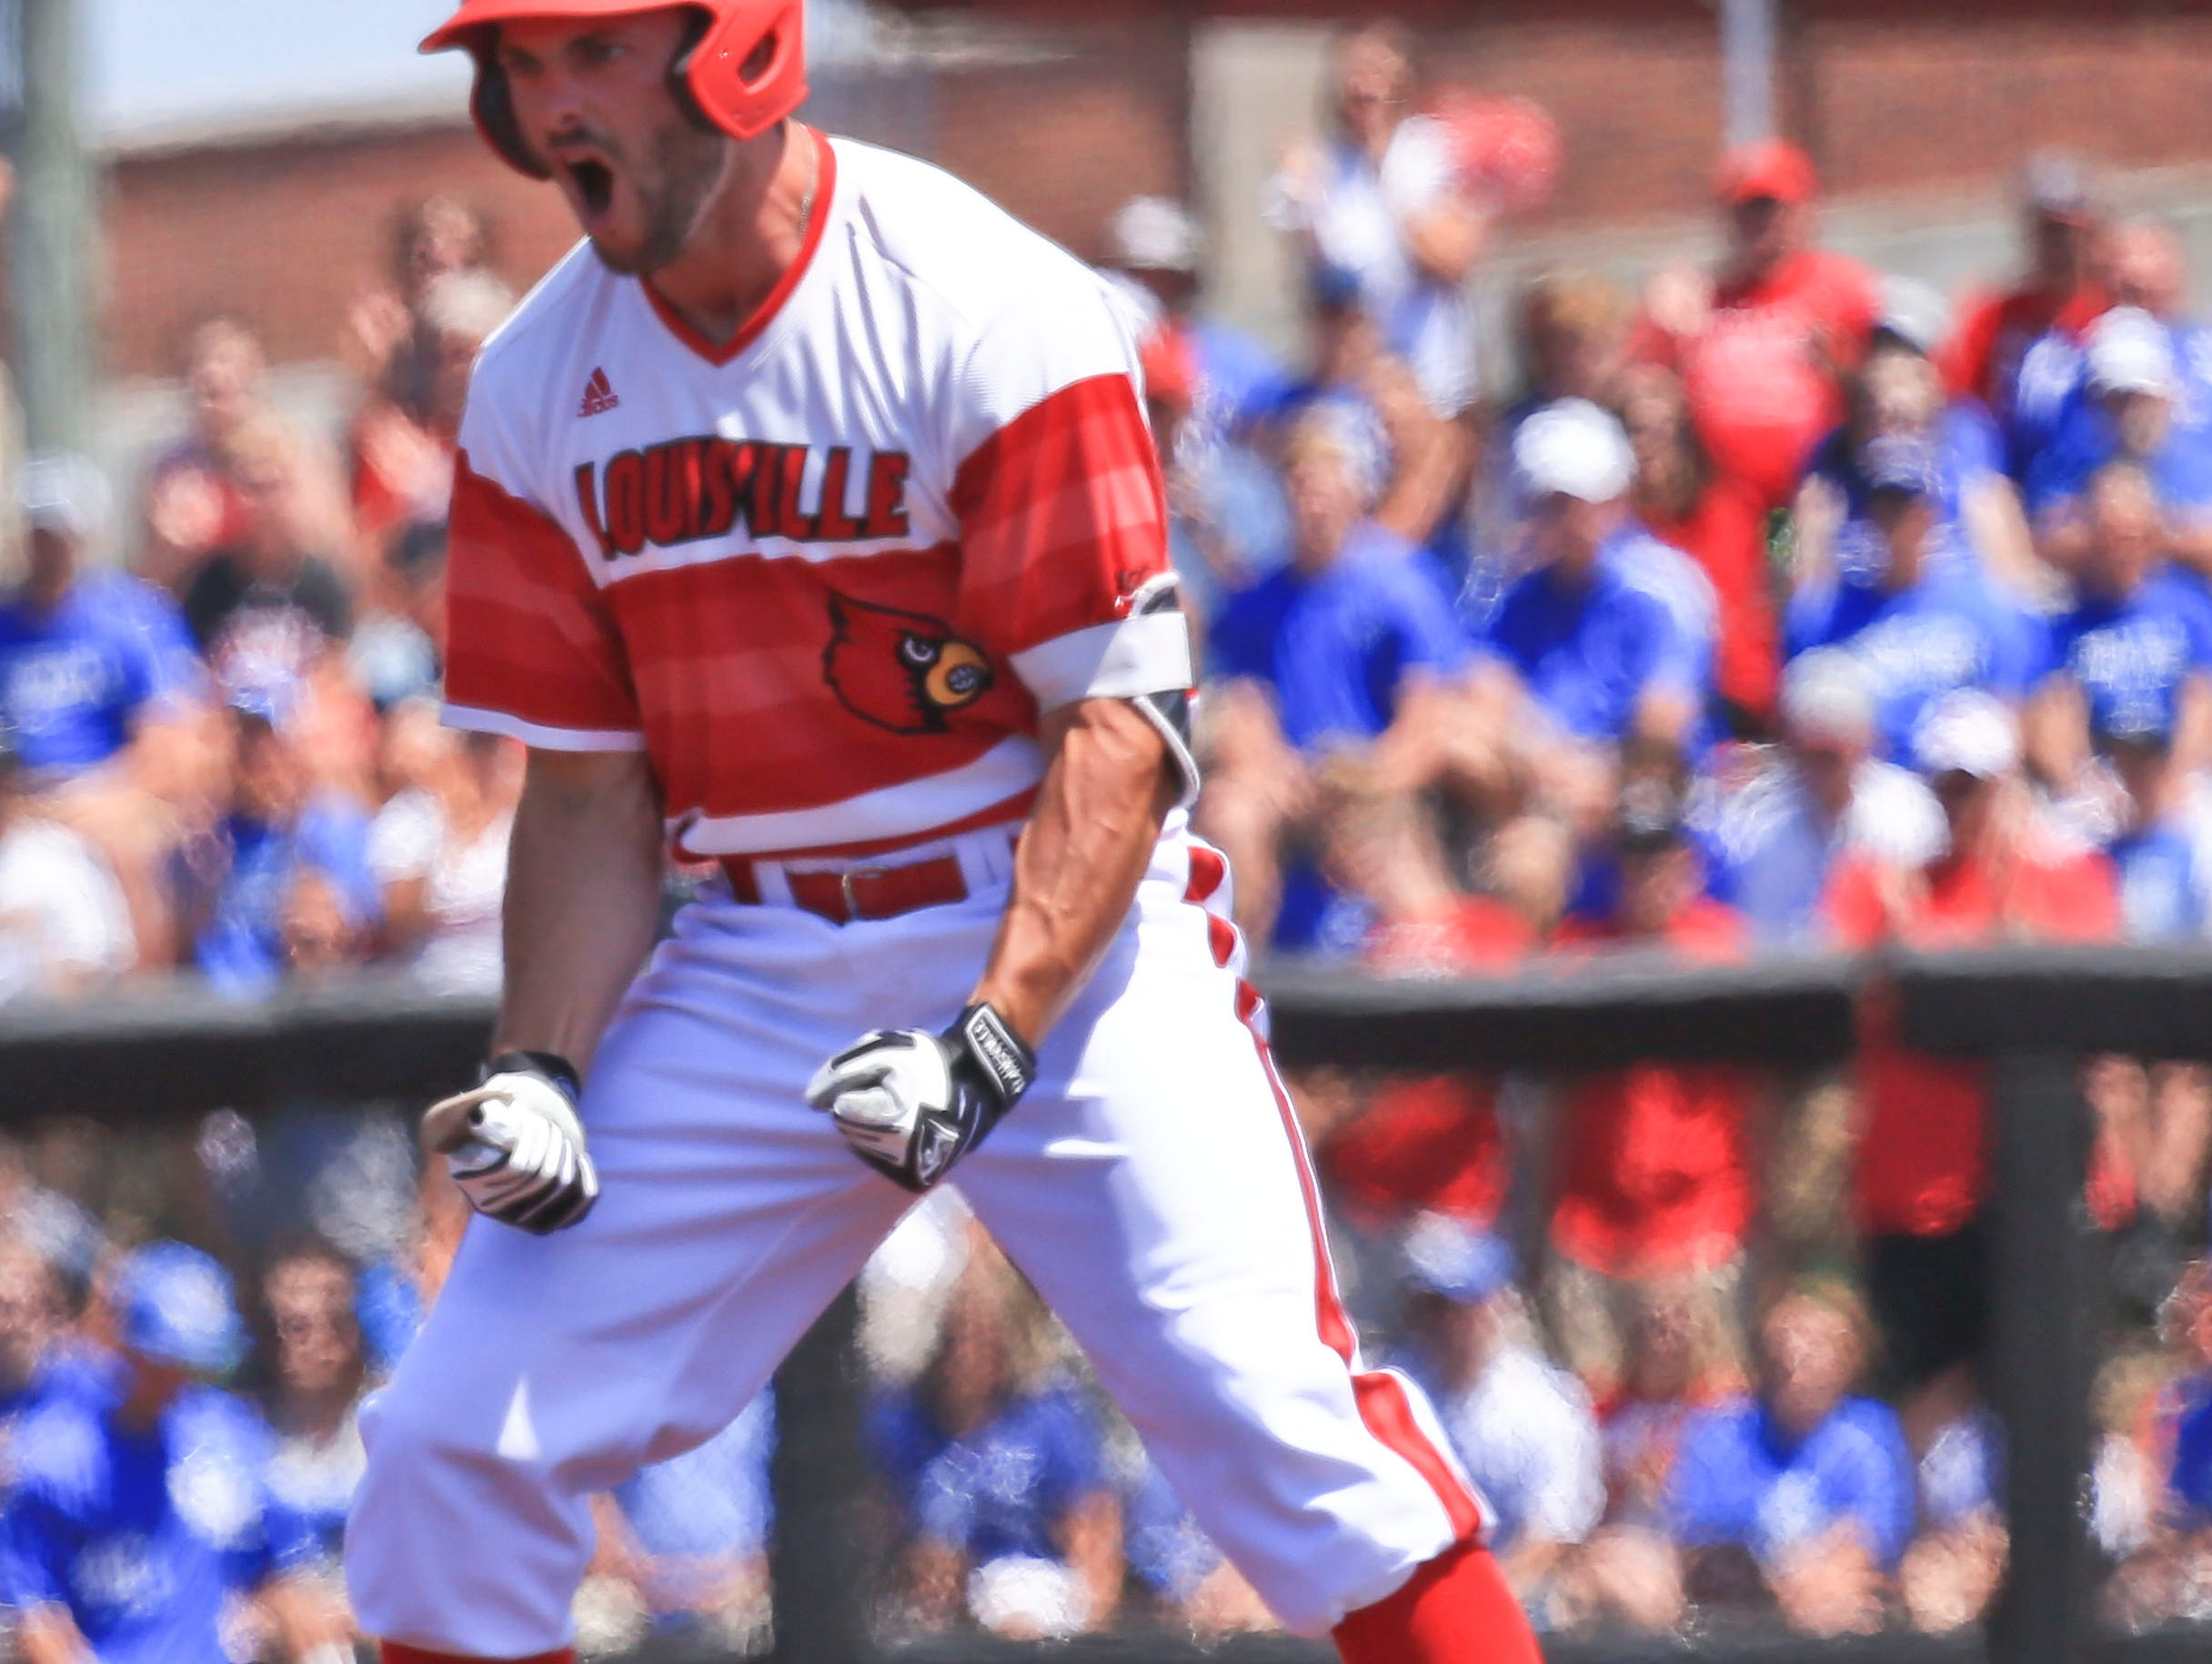 Louisville's Logan Taylor roars after hitting a double early against Kentucky in the Super Regional Friday. Taylor had one hit at three at-bats, with two runs scored.The Cards won 5-2 over the Wildcats.